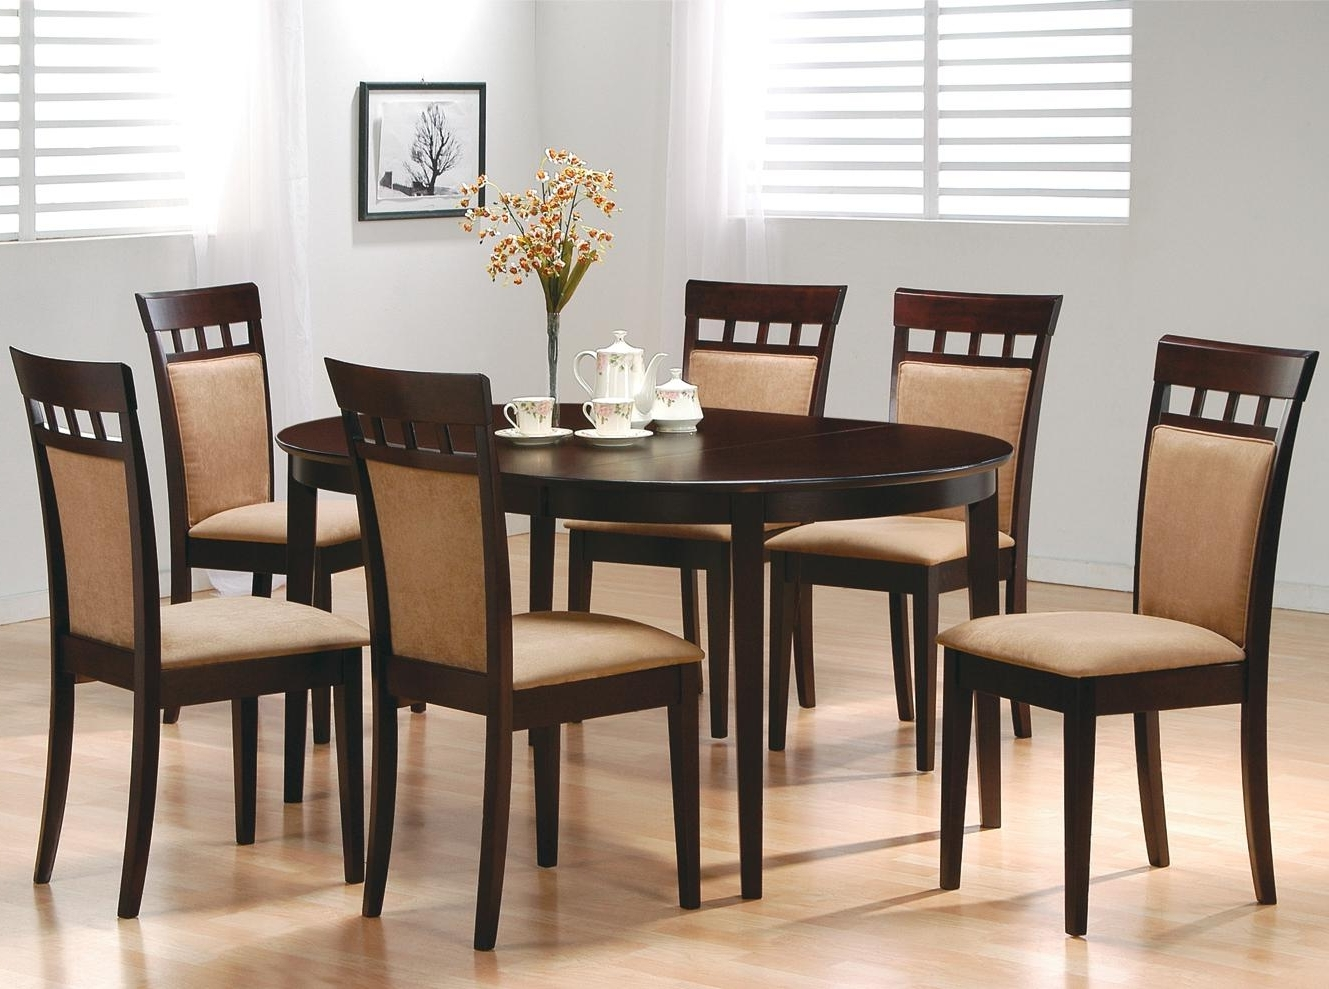 Dunk & Bright Furniture Regarding 6 Chairs Dining Tables (Gallery 10 of 25)